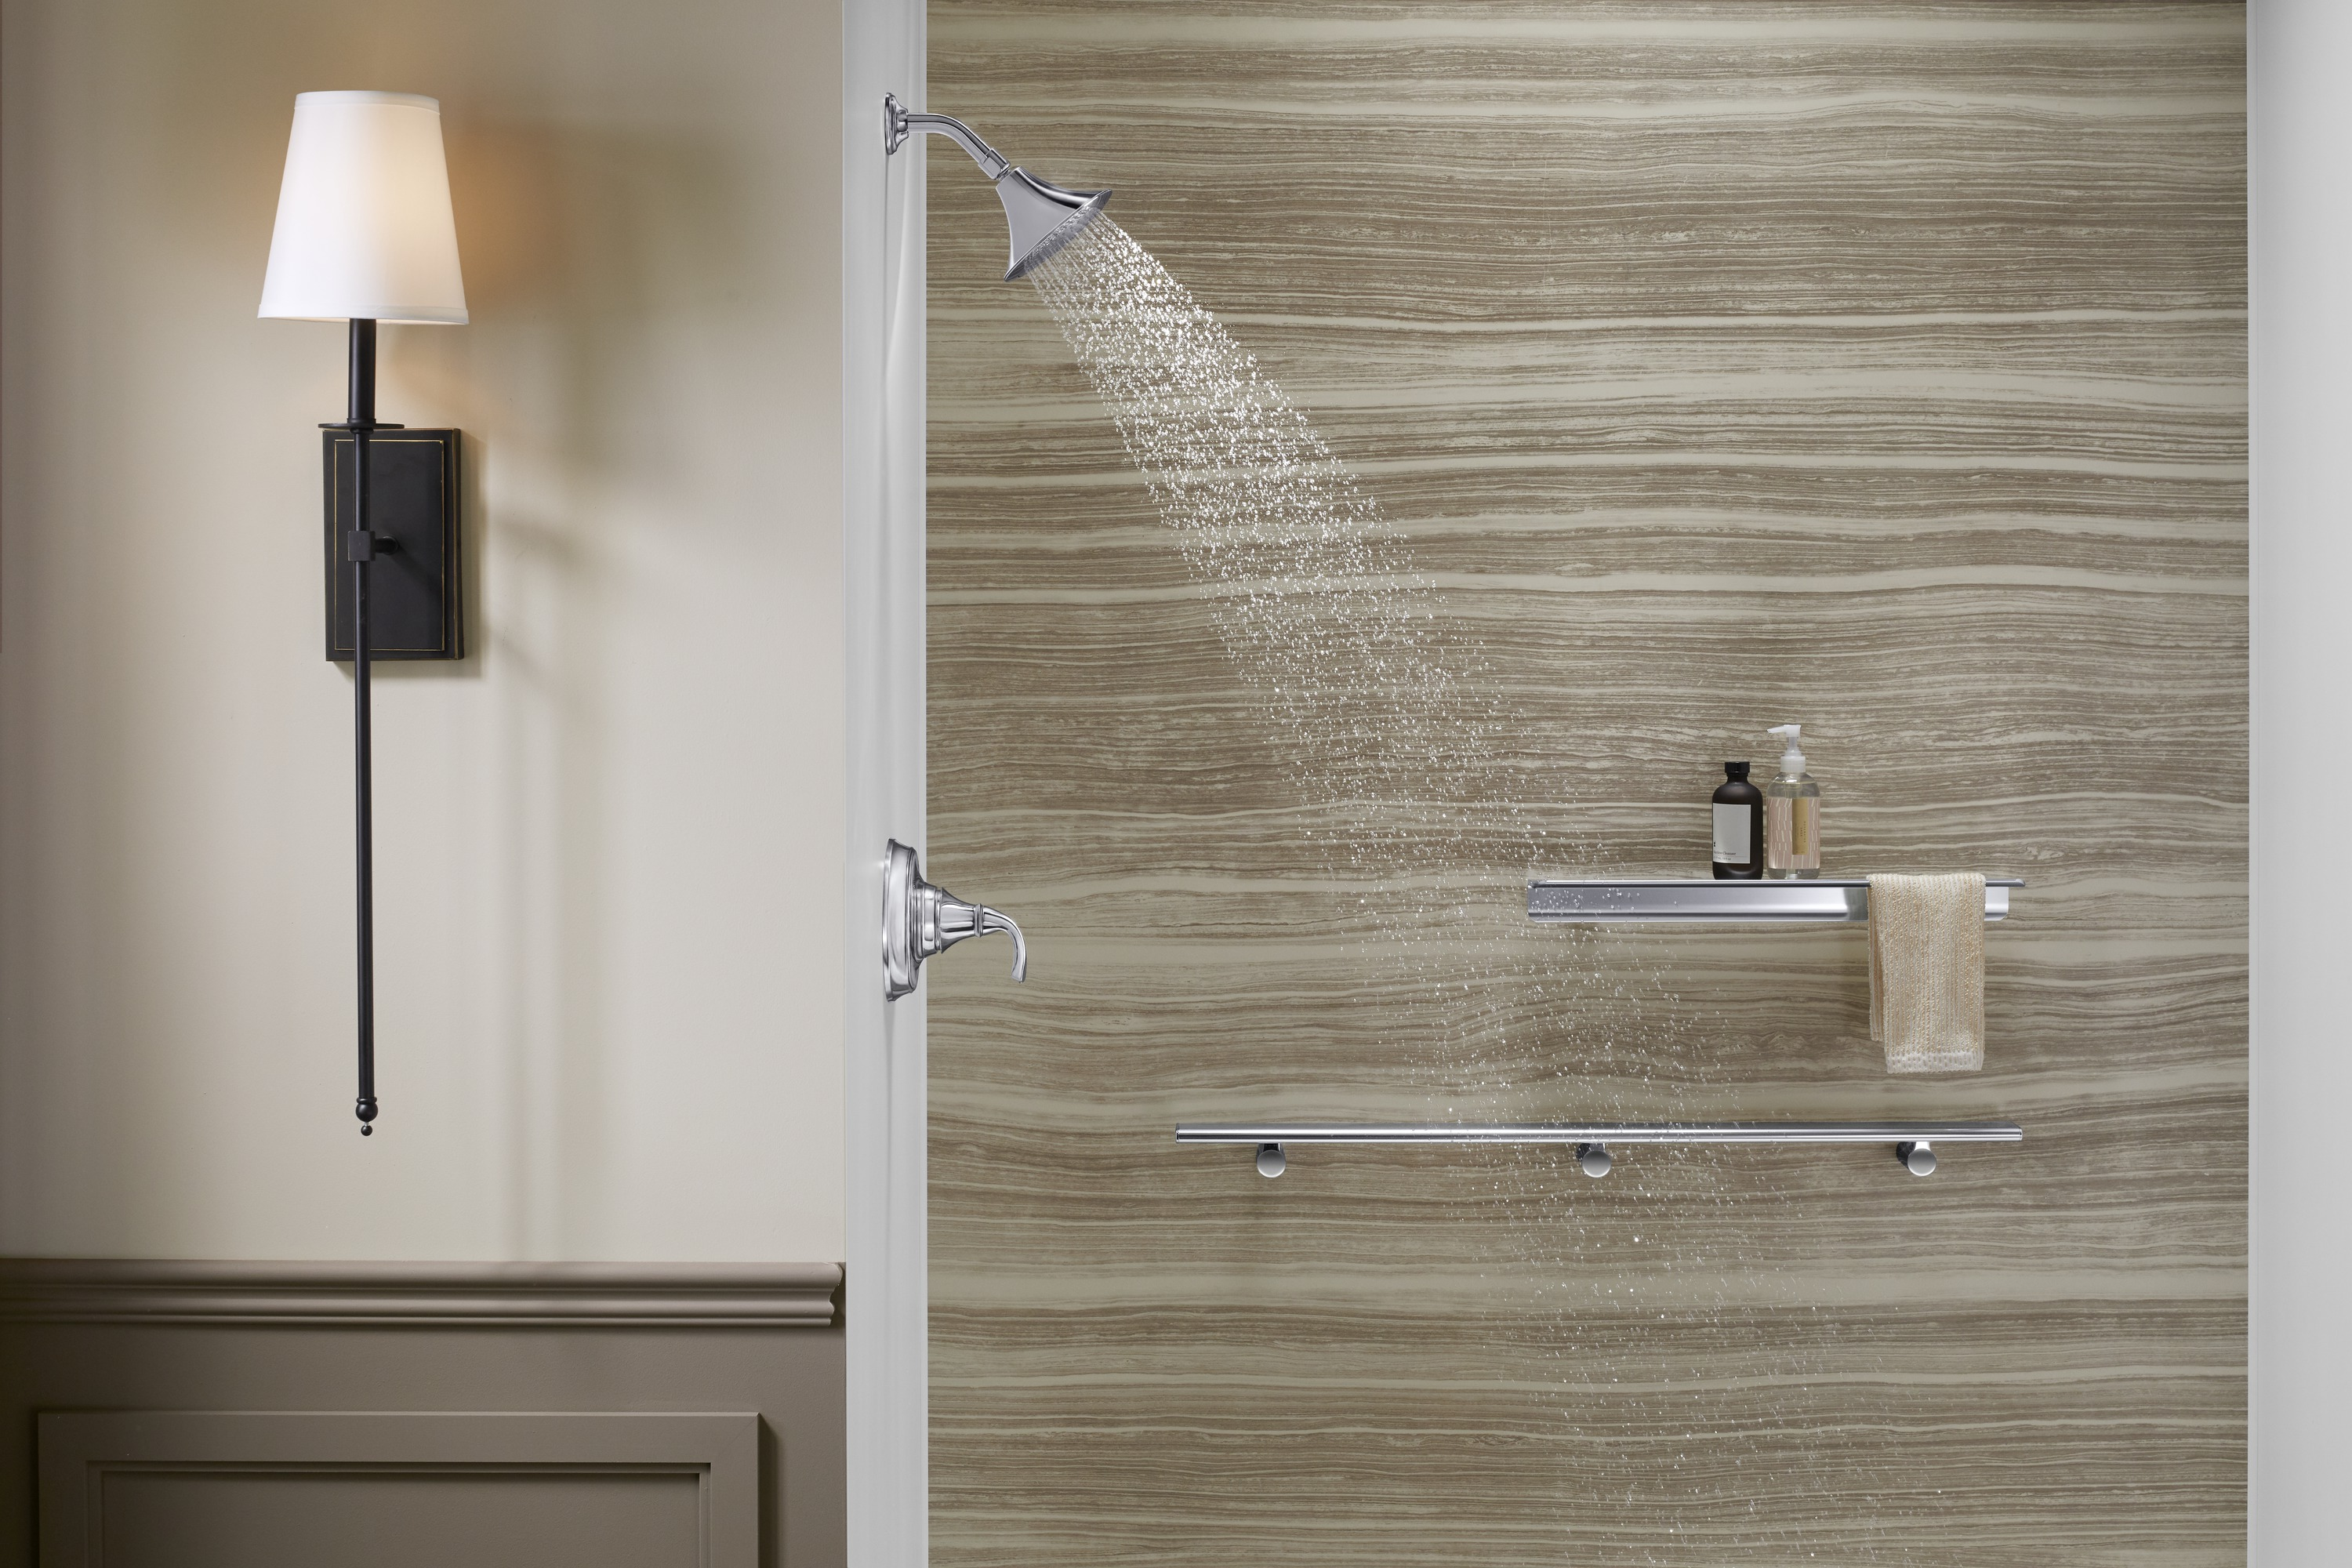 Image of a walk in shower with water spraying out of its shower head